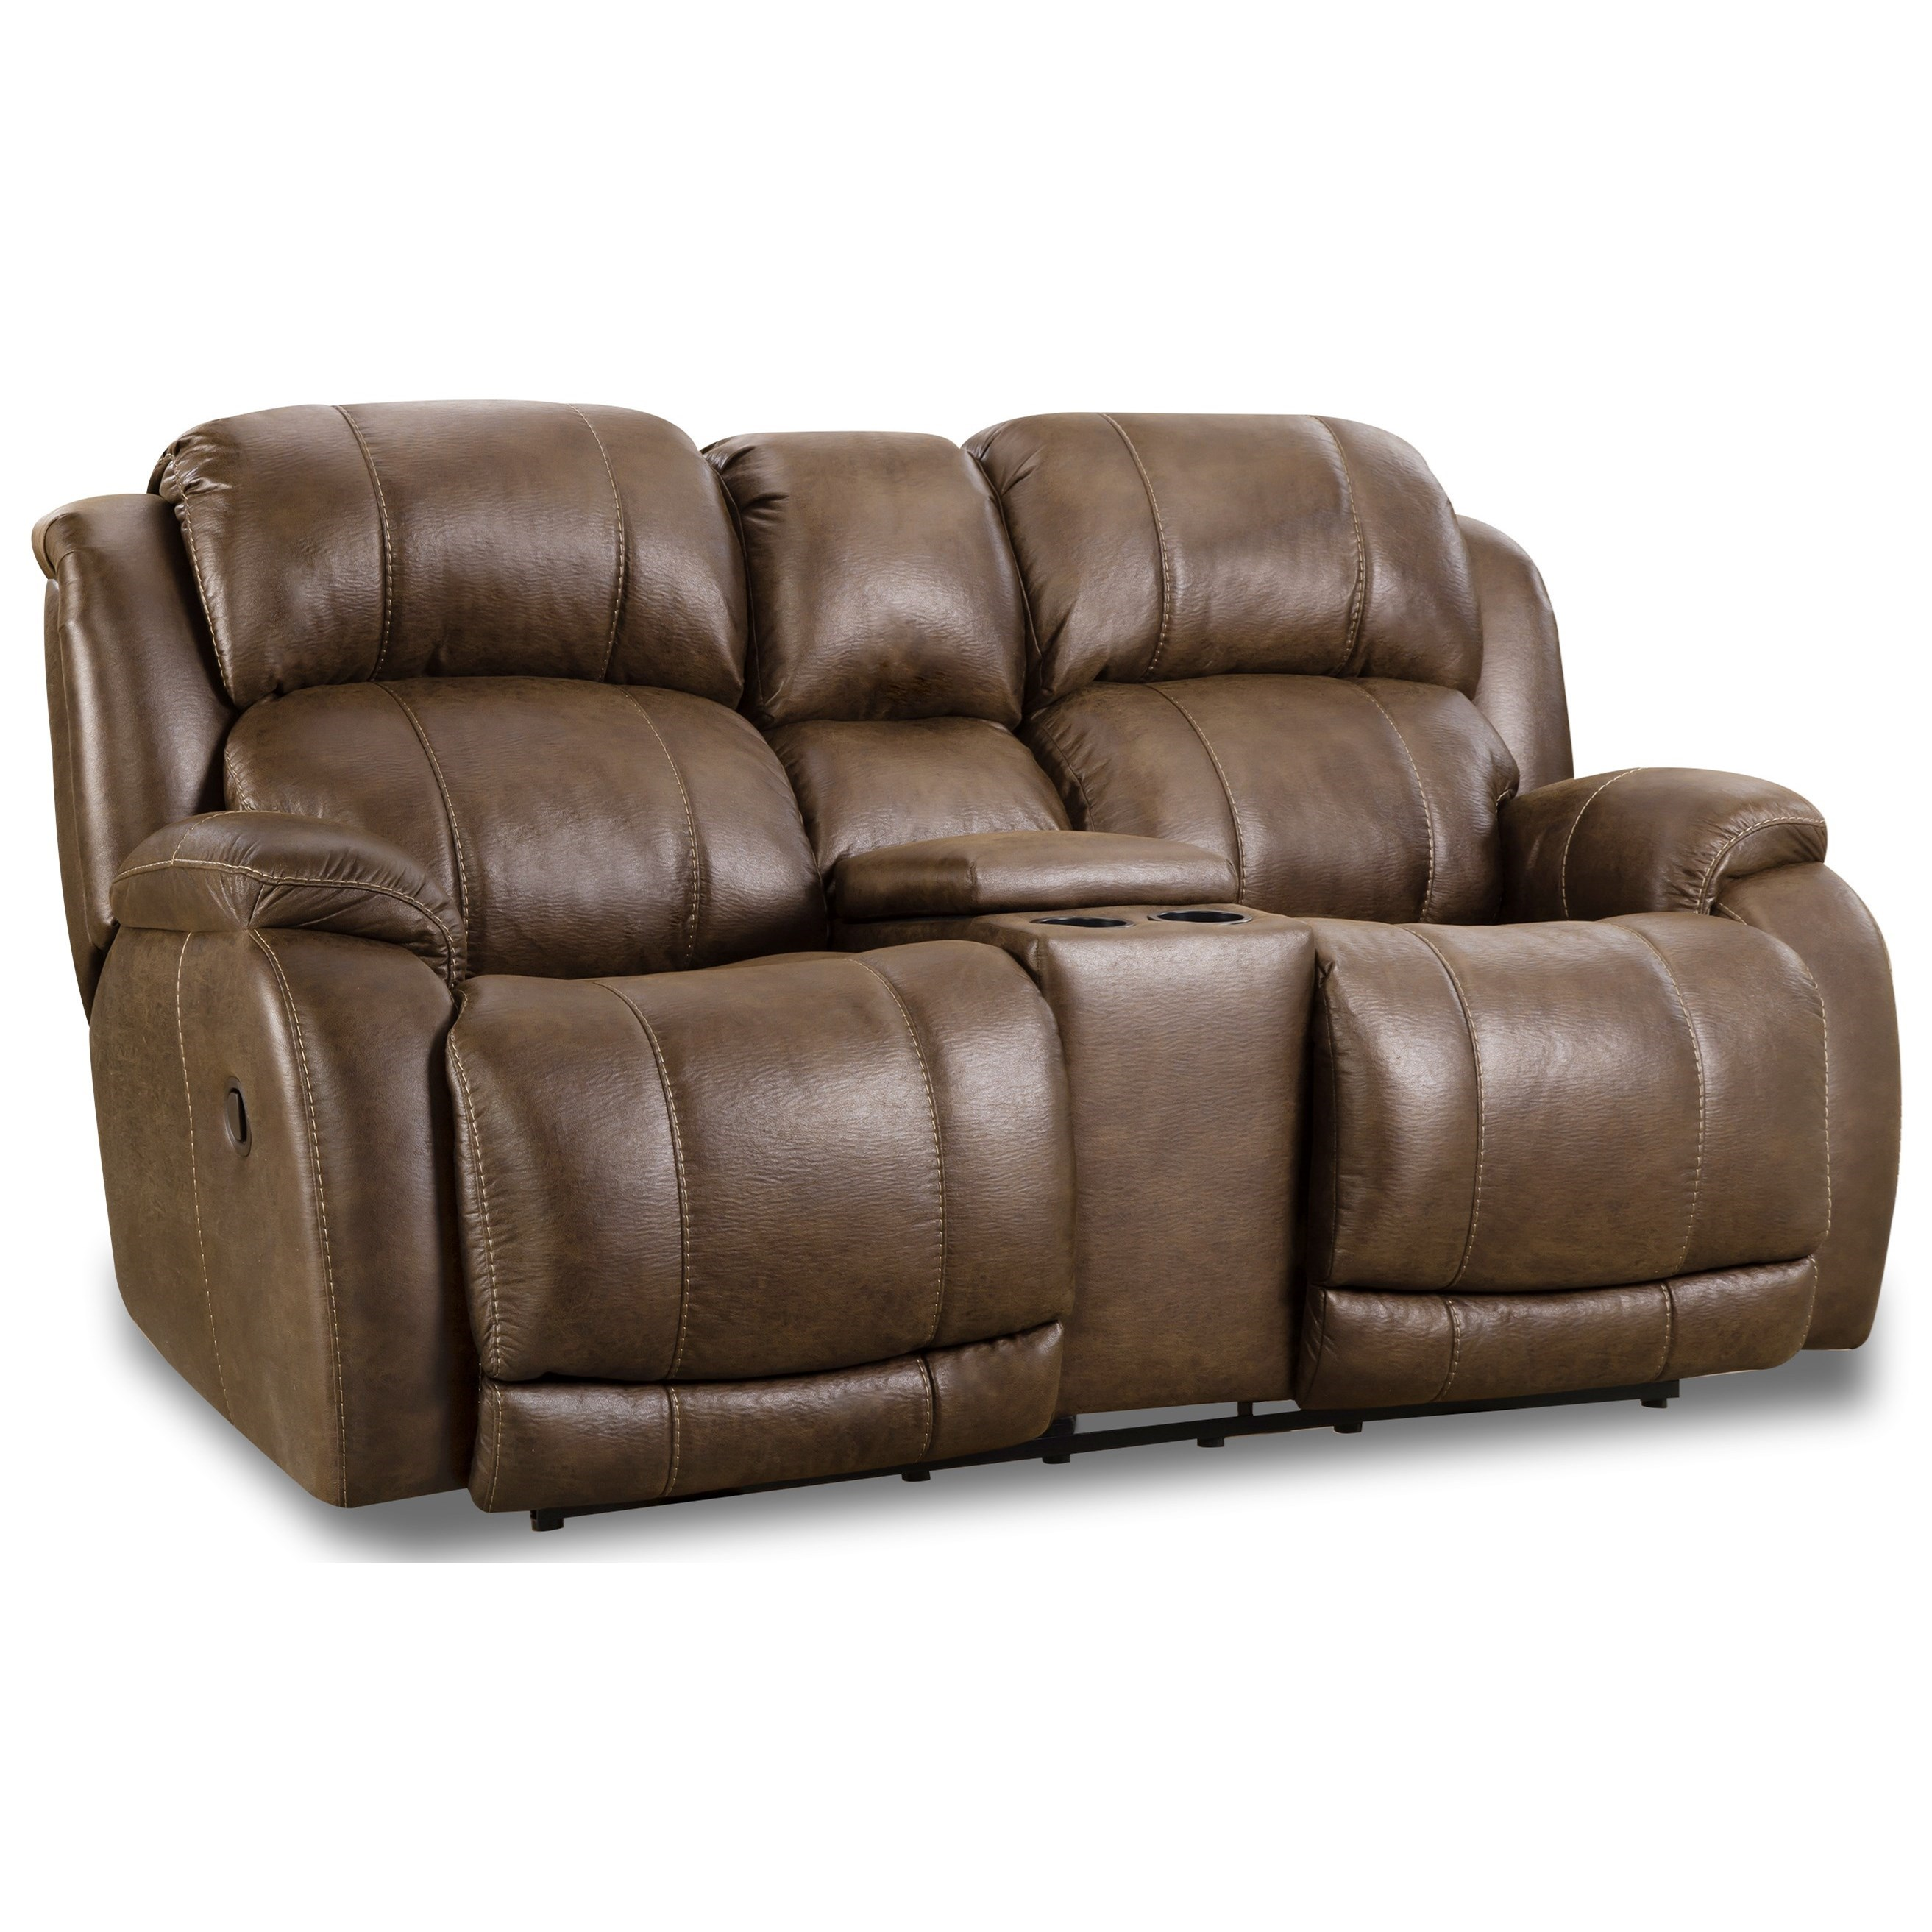 Denali Reclining Console Loveseat at Prime Brothers Furniture